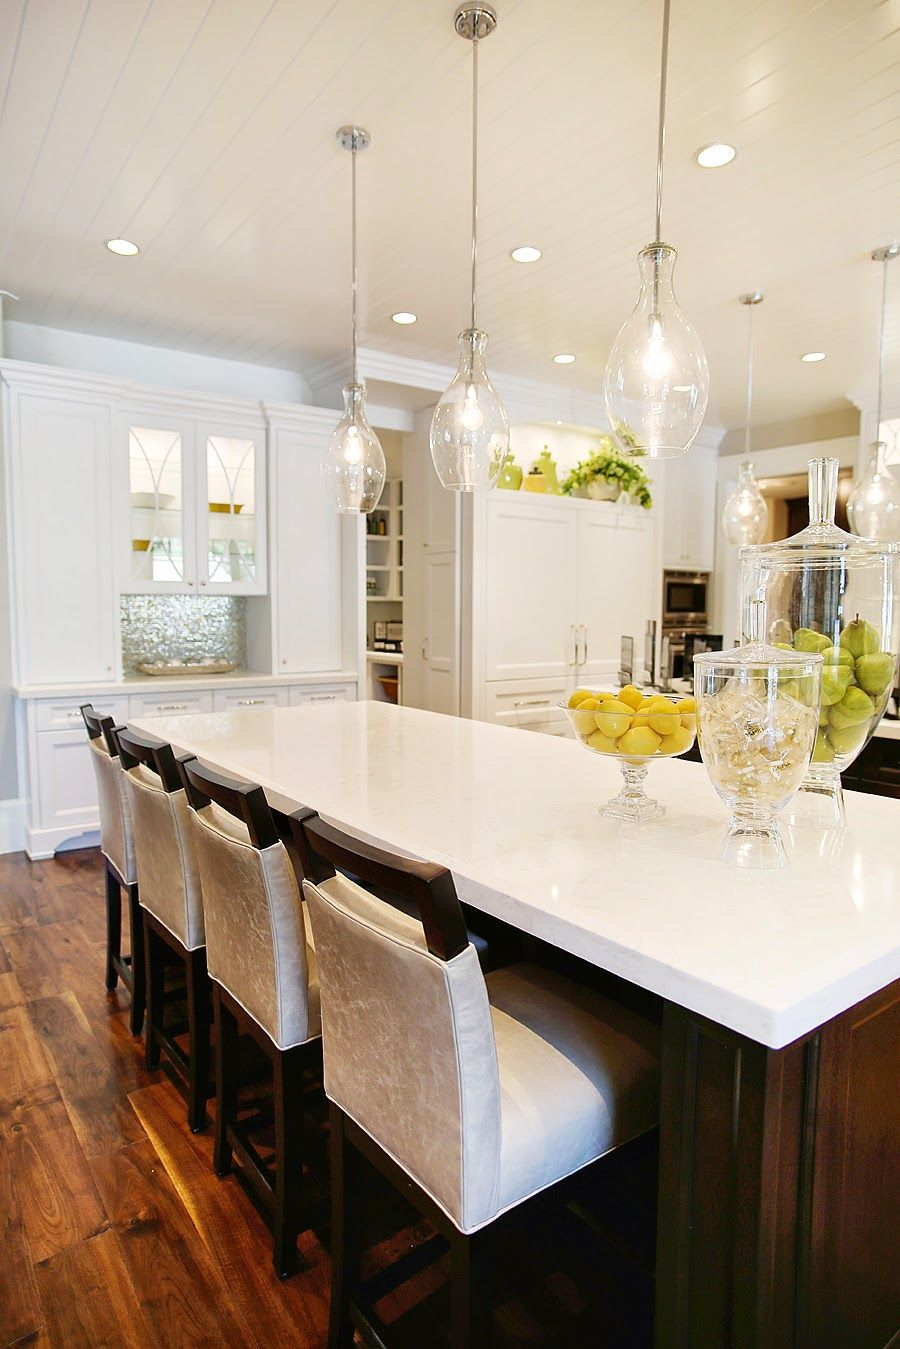 Tremendous Kitchen Obsessed Lemon And Lime Theme With Dark Brown And Interior Design Ideas Helimdqseriescom